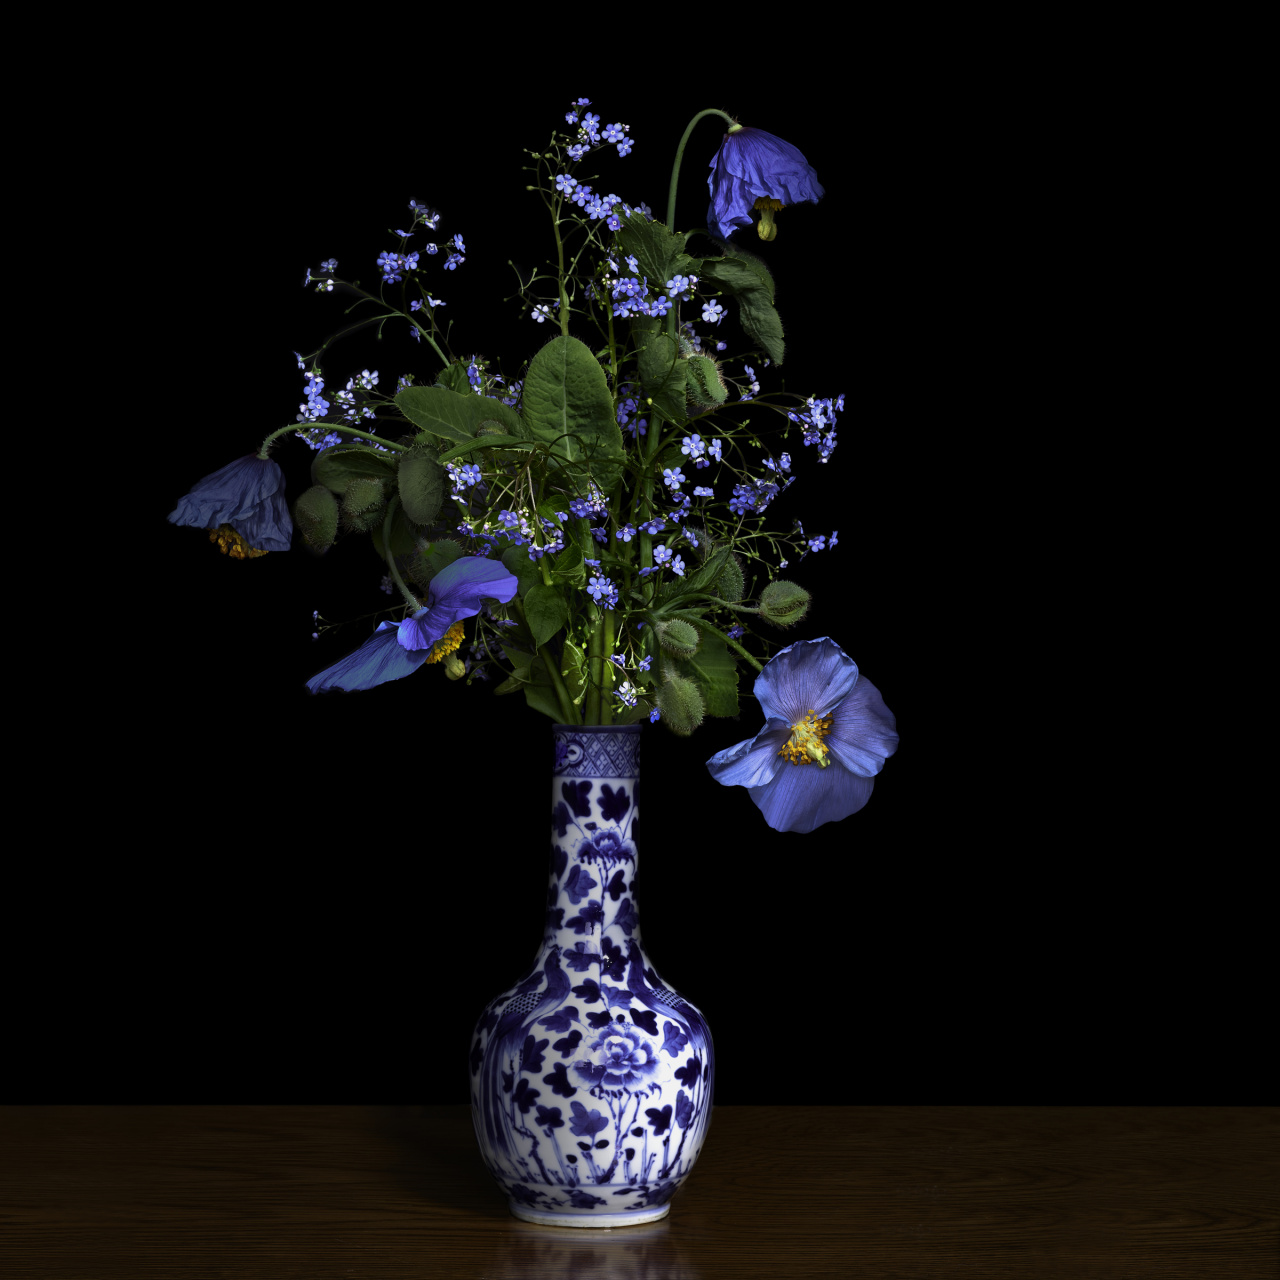 T.M. Glass, Blue Poppy in a Blue and White Chinese Vase, 2018